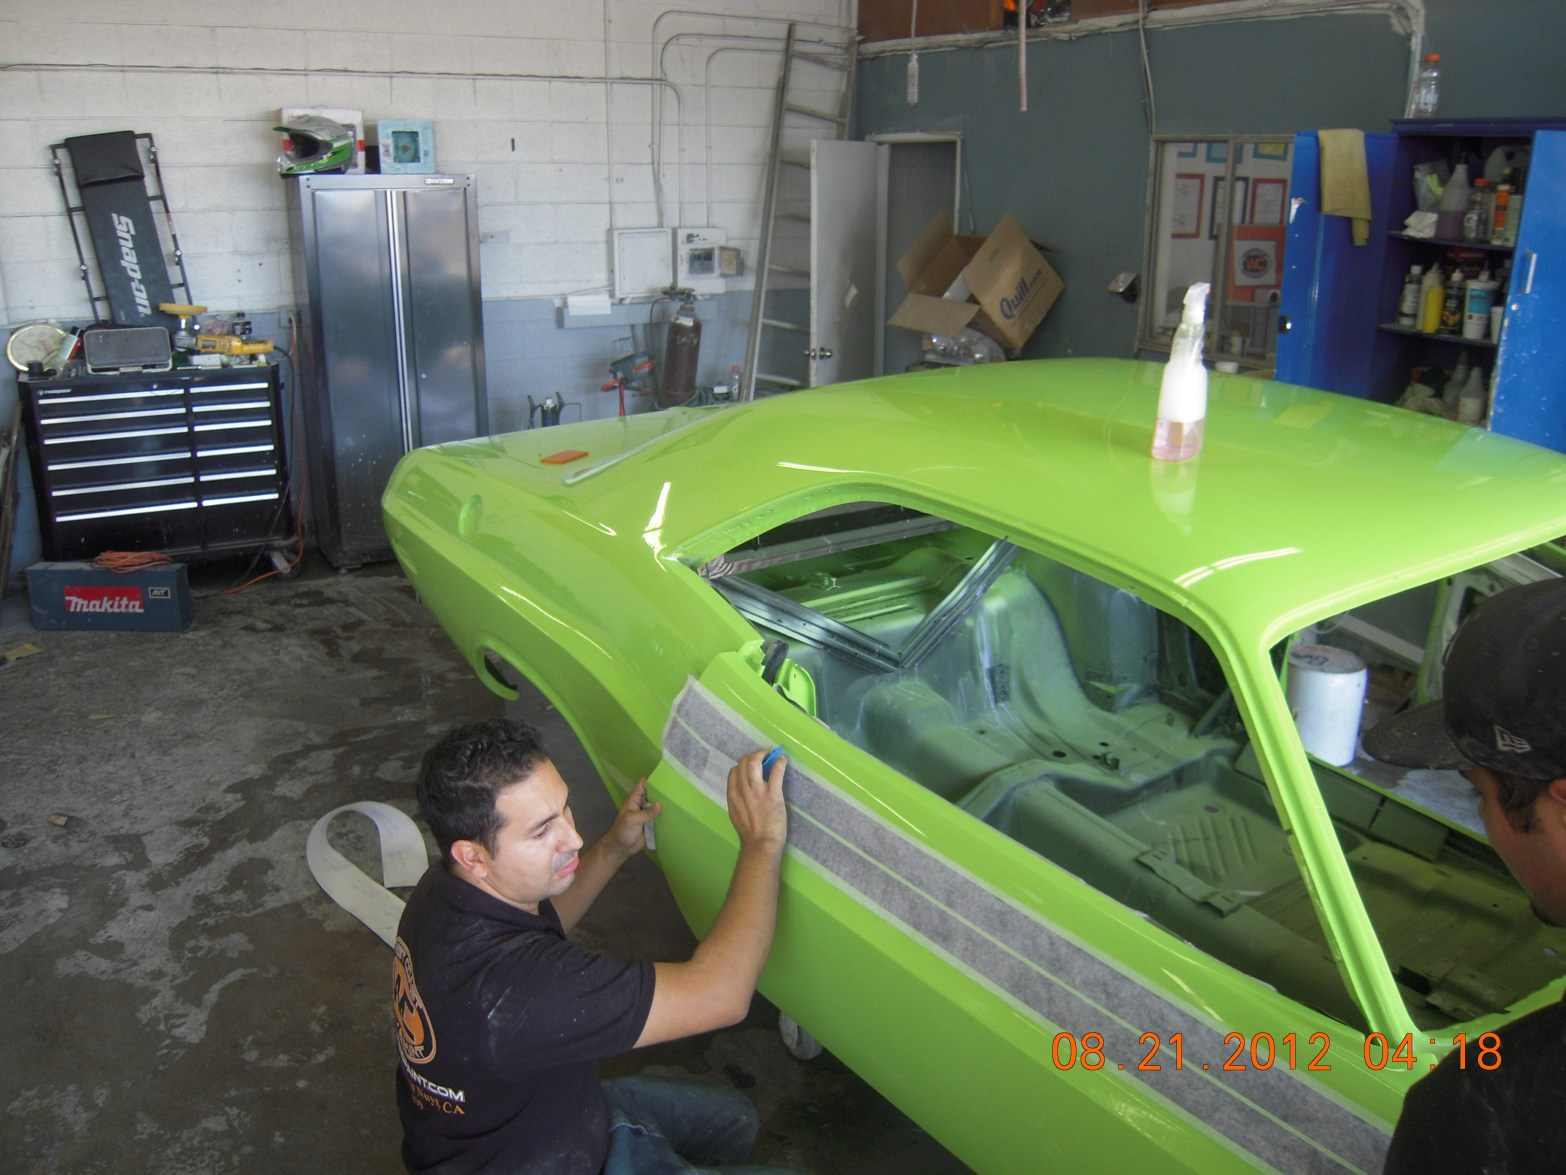 west-coast-body-and-paint-sublime-green-1971-dodge-challenger-45